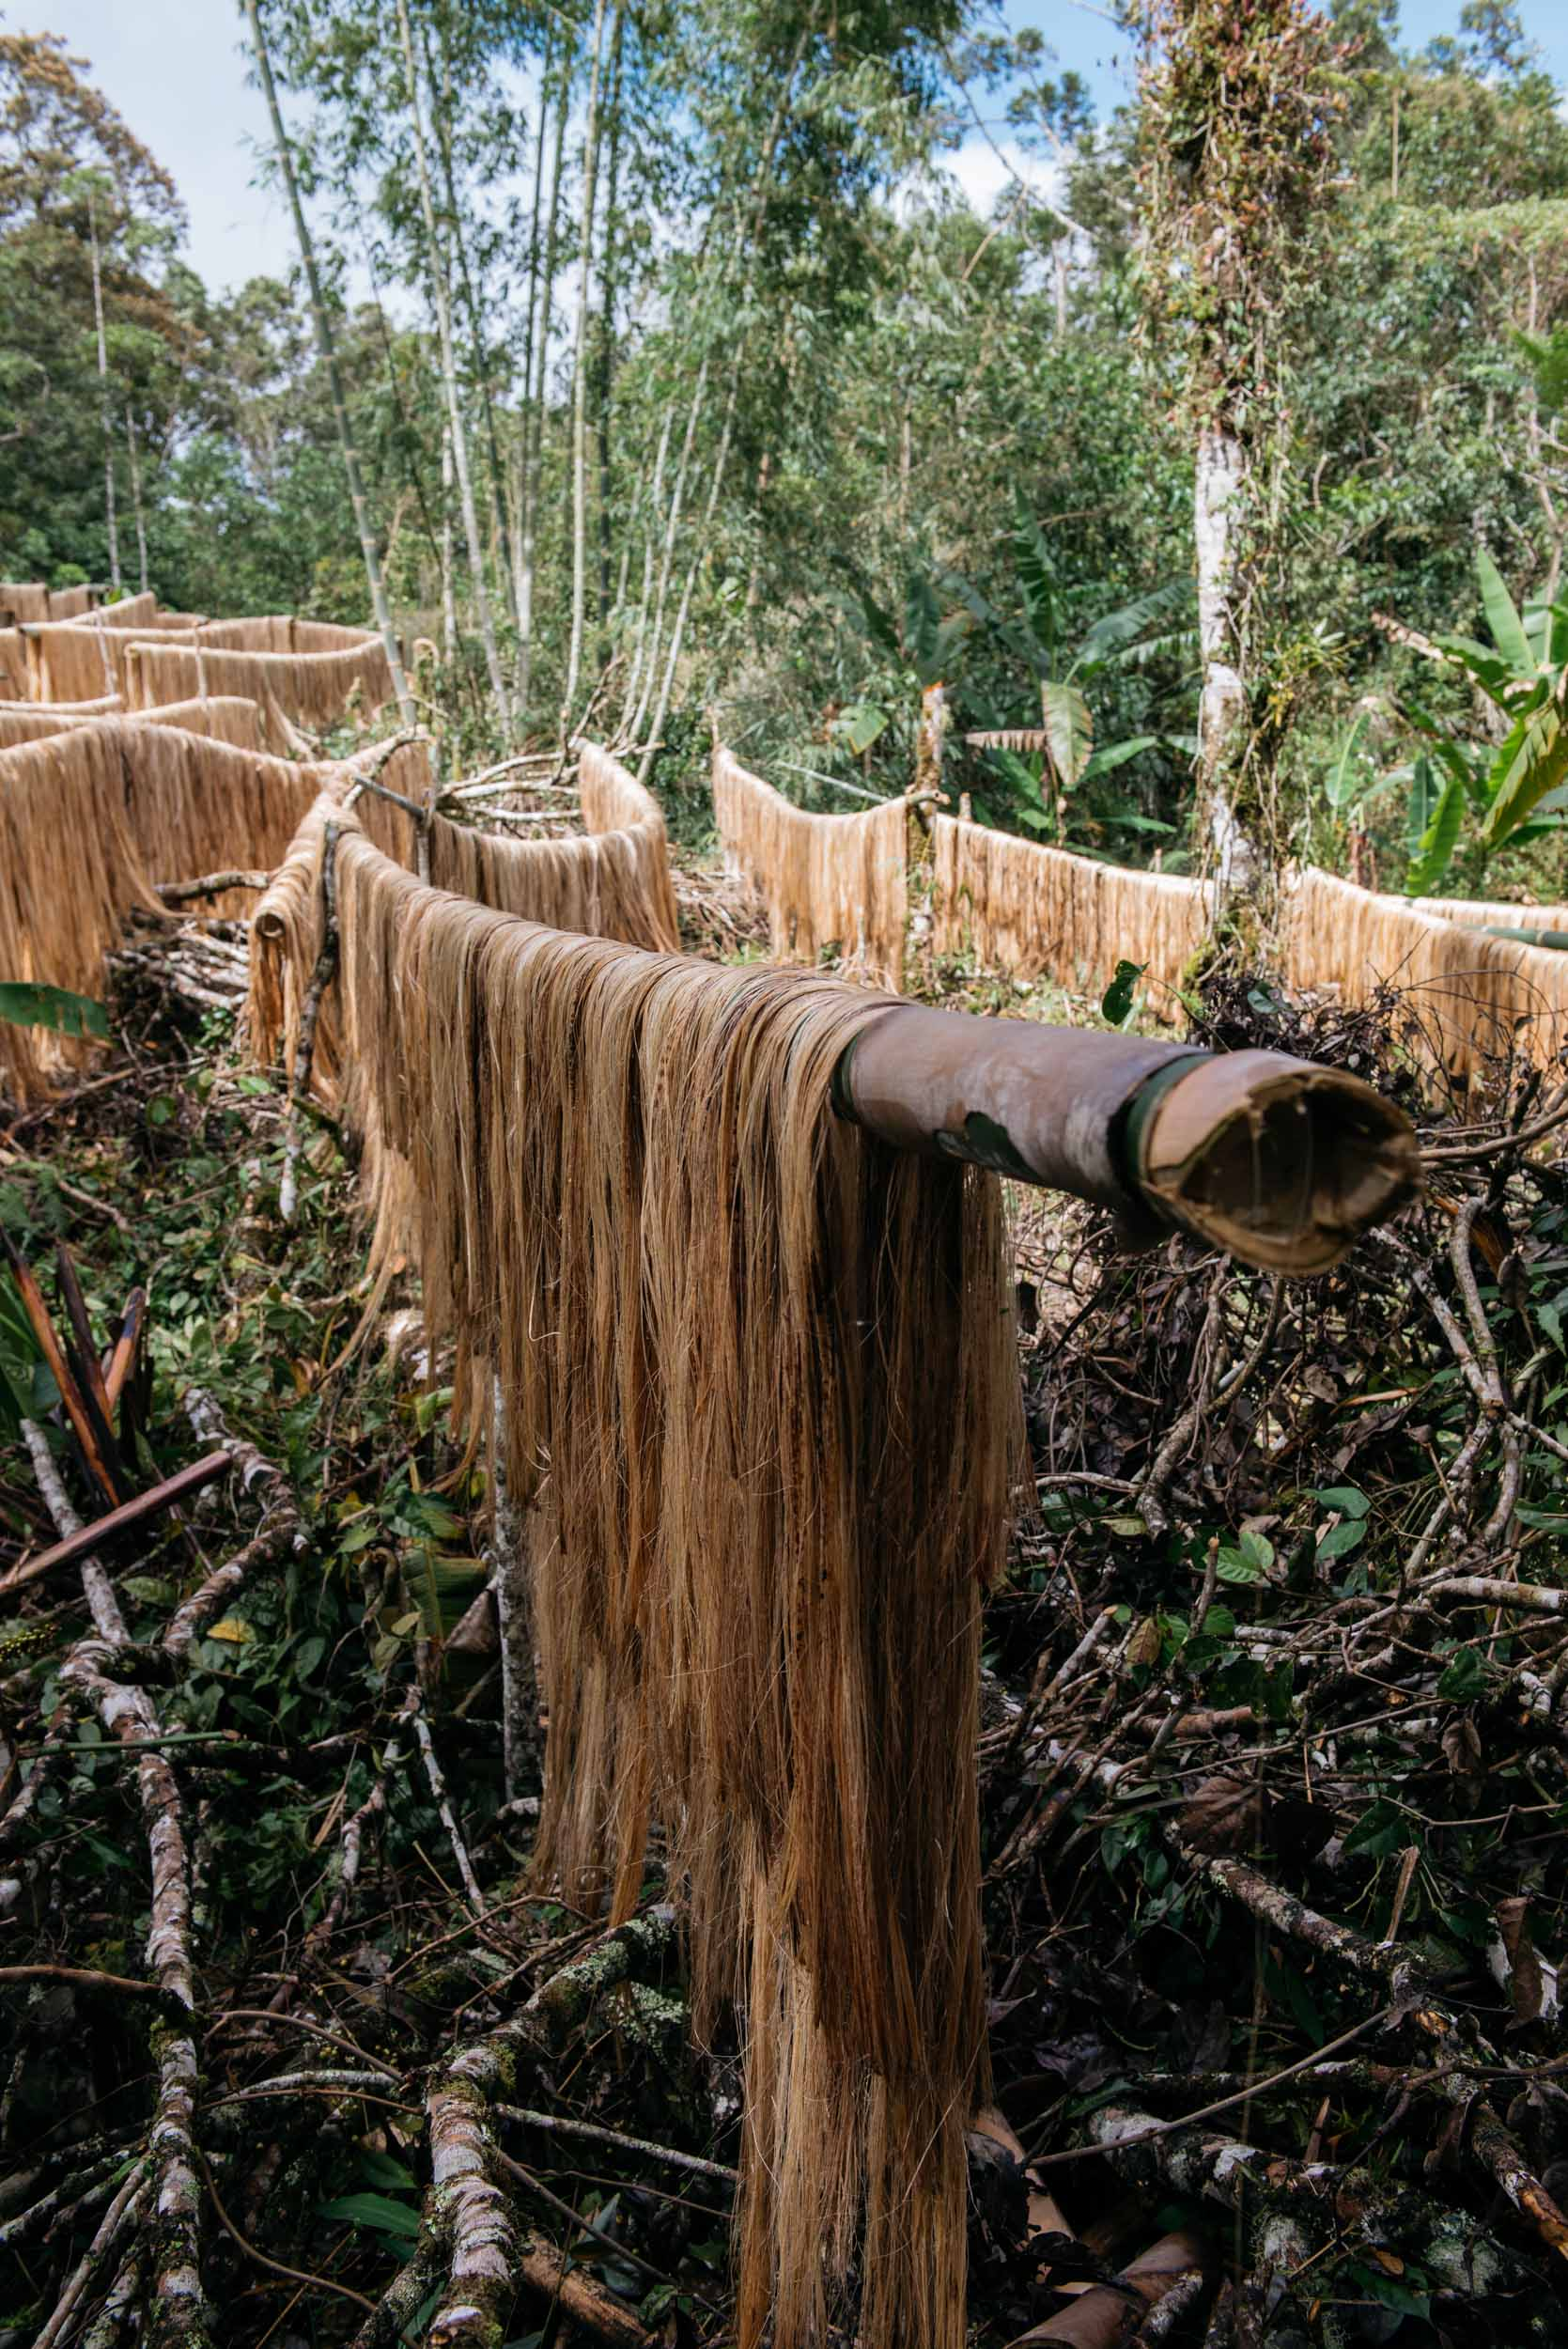 Once stripped, the farmers will then hang these fibers in wood panels placed in sun-directed areas within the forest. Sun-drying lasts for half a day up to two days, depending on the weather.